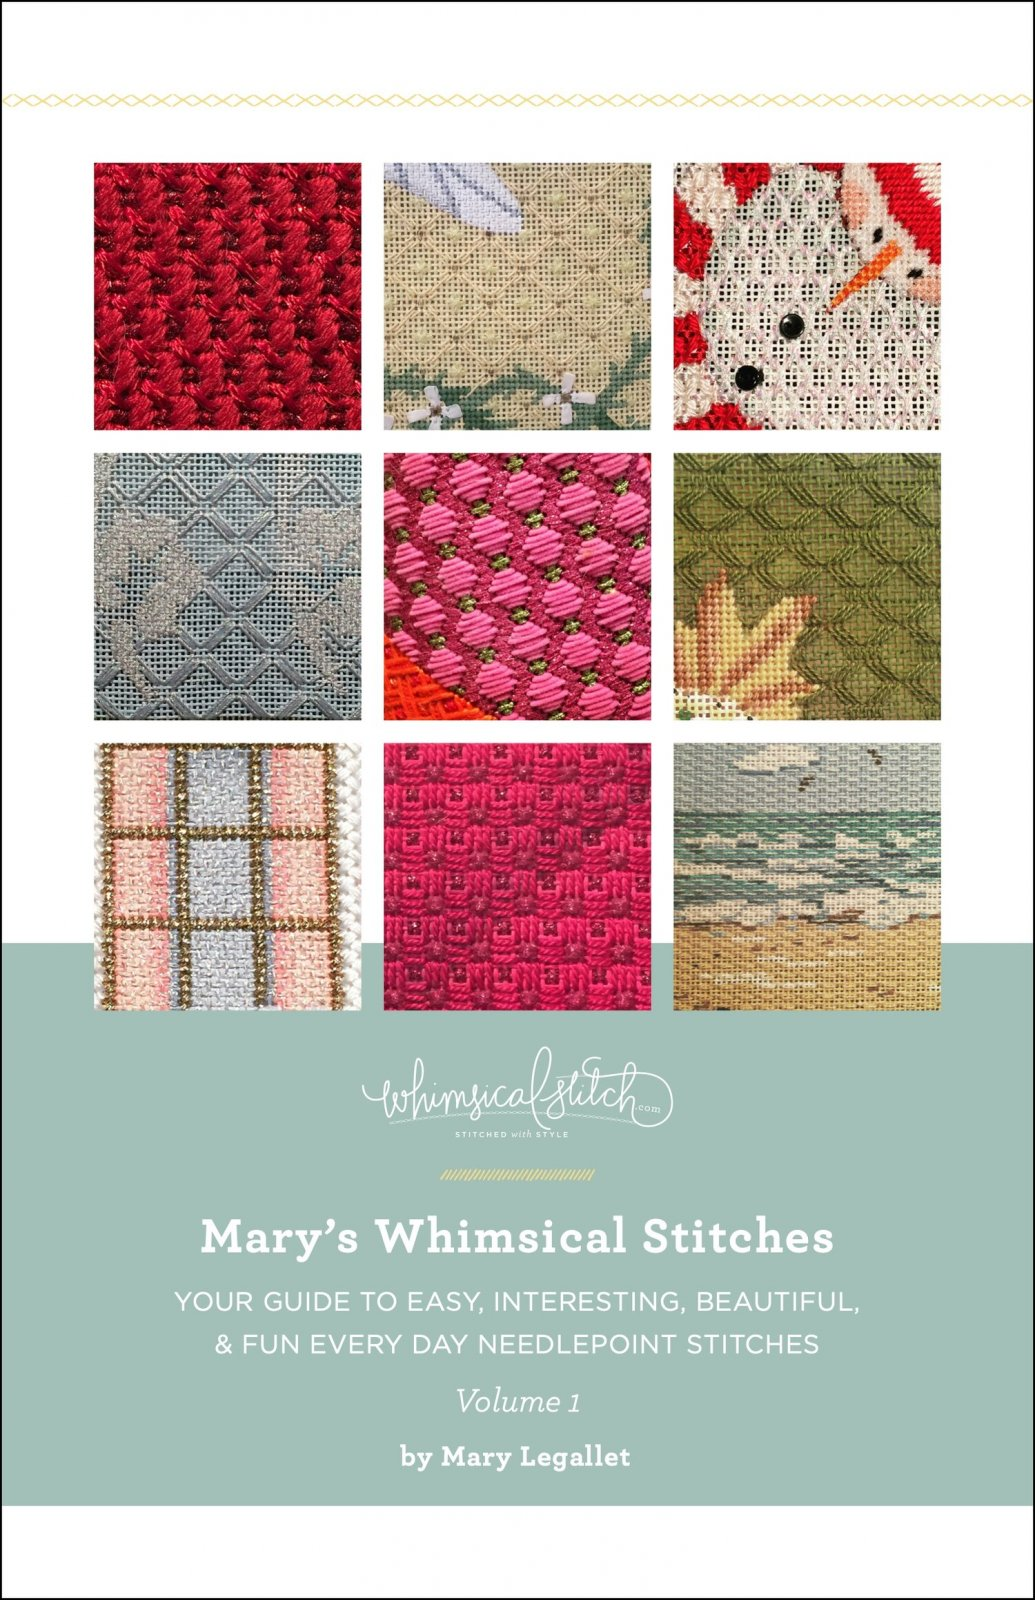 Mary's Whimsical Stitches Book Vol. 1